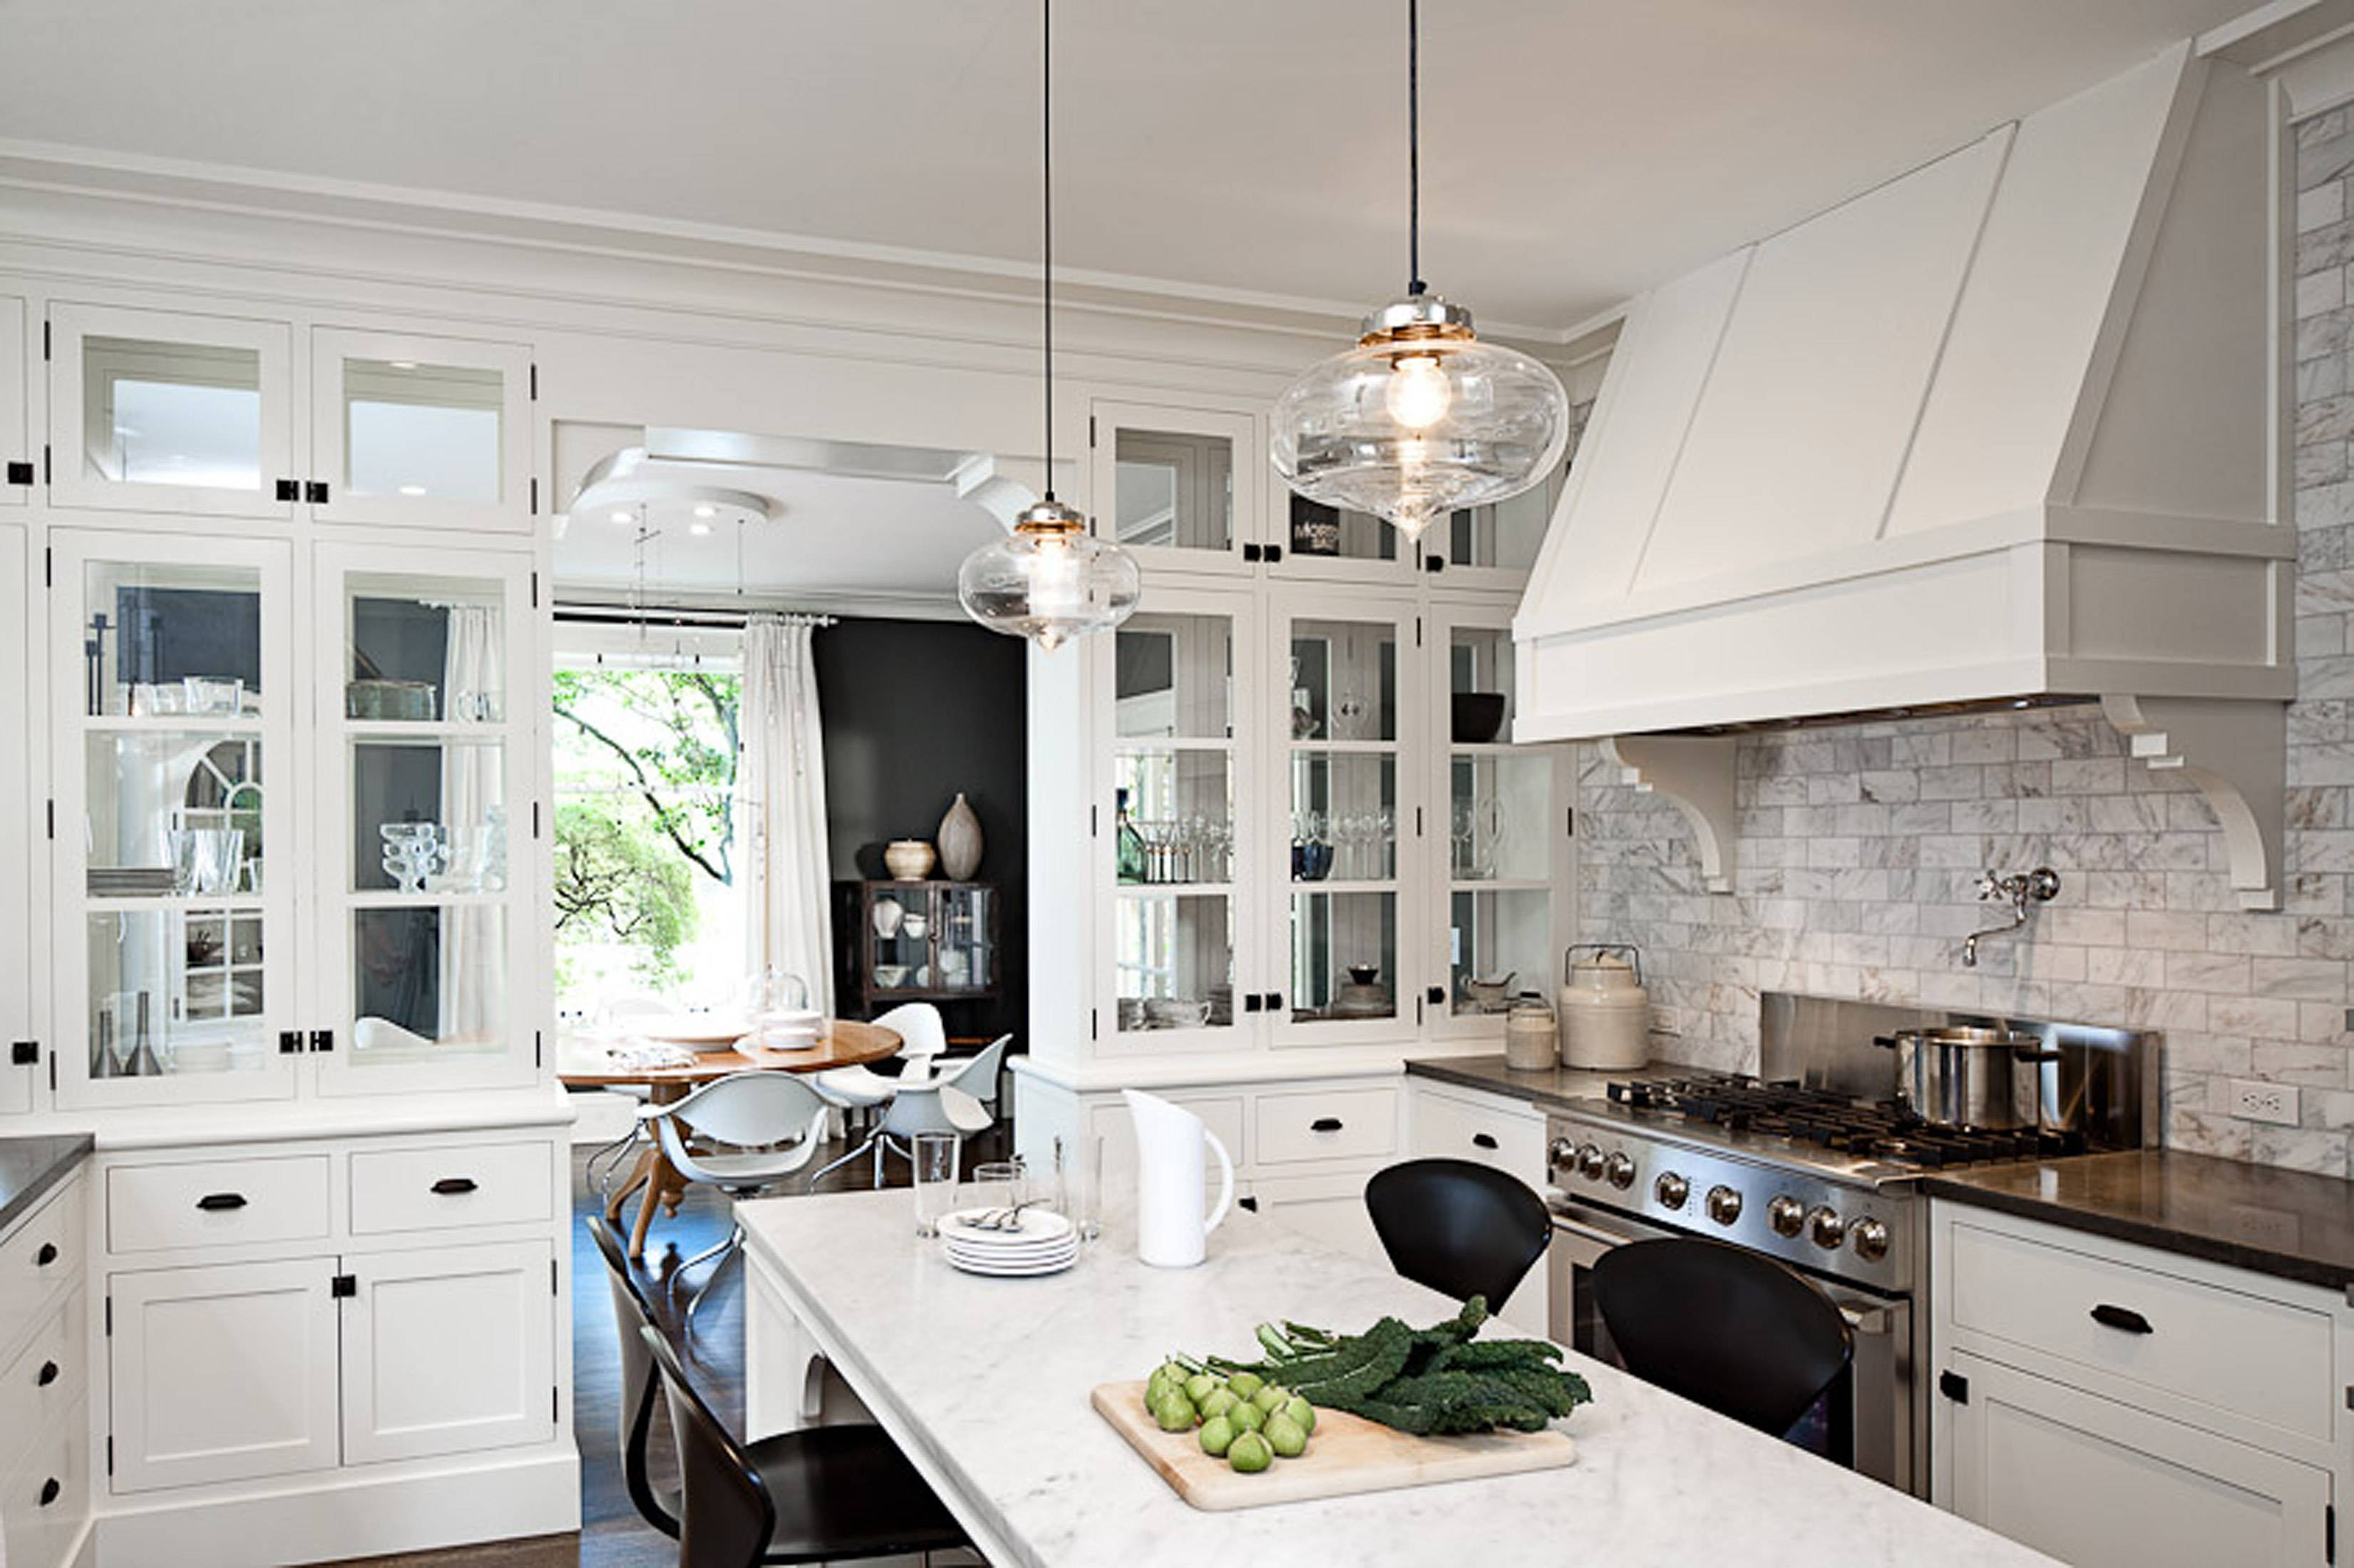 Bedroom : Glass Pendant Lights For Kitchen Island Modern Kitchen Pertaining To Pendant Lighting Over Island (View 10 of 15)